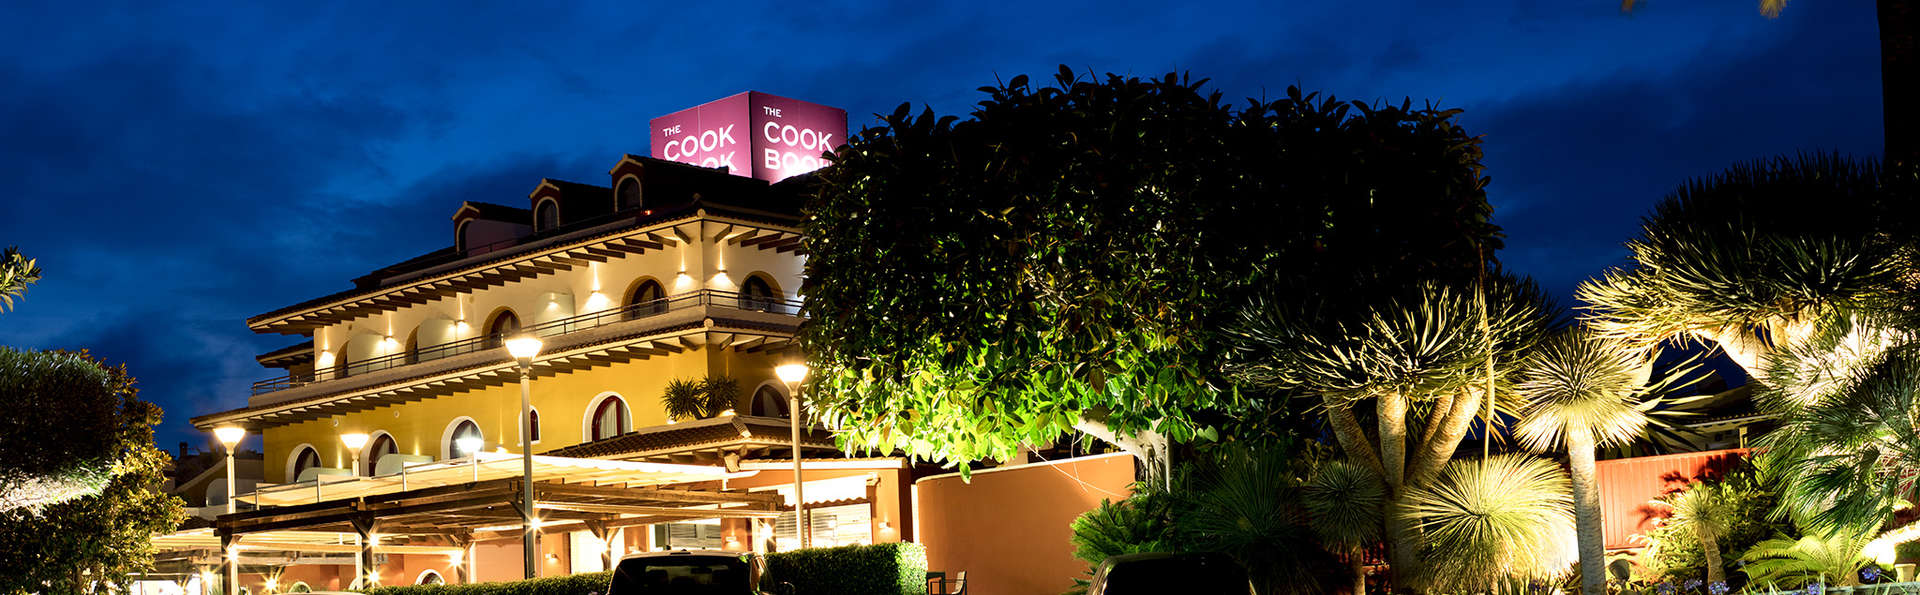 The Cook Book Gastro Boutique Hotel & Spa - The_Cook_Book_Hotel___1_.jpg